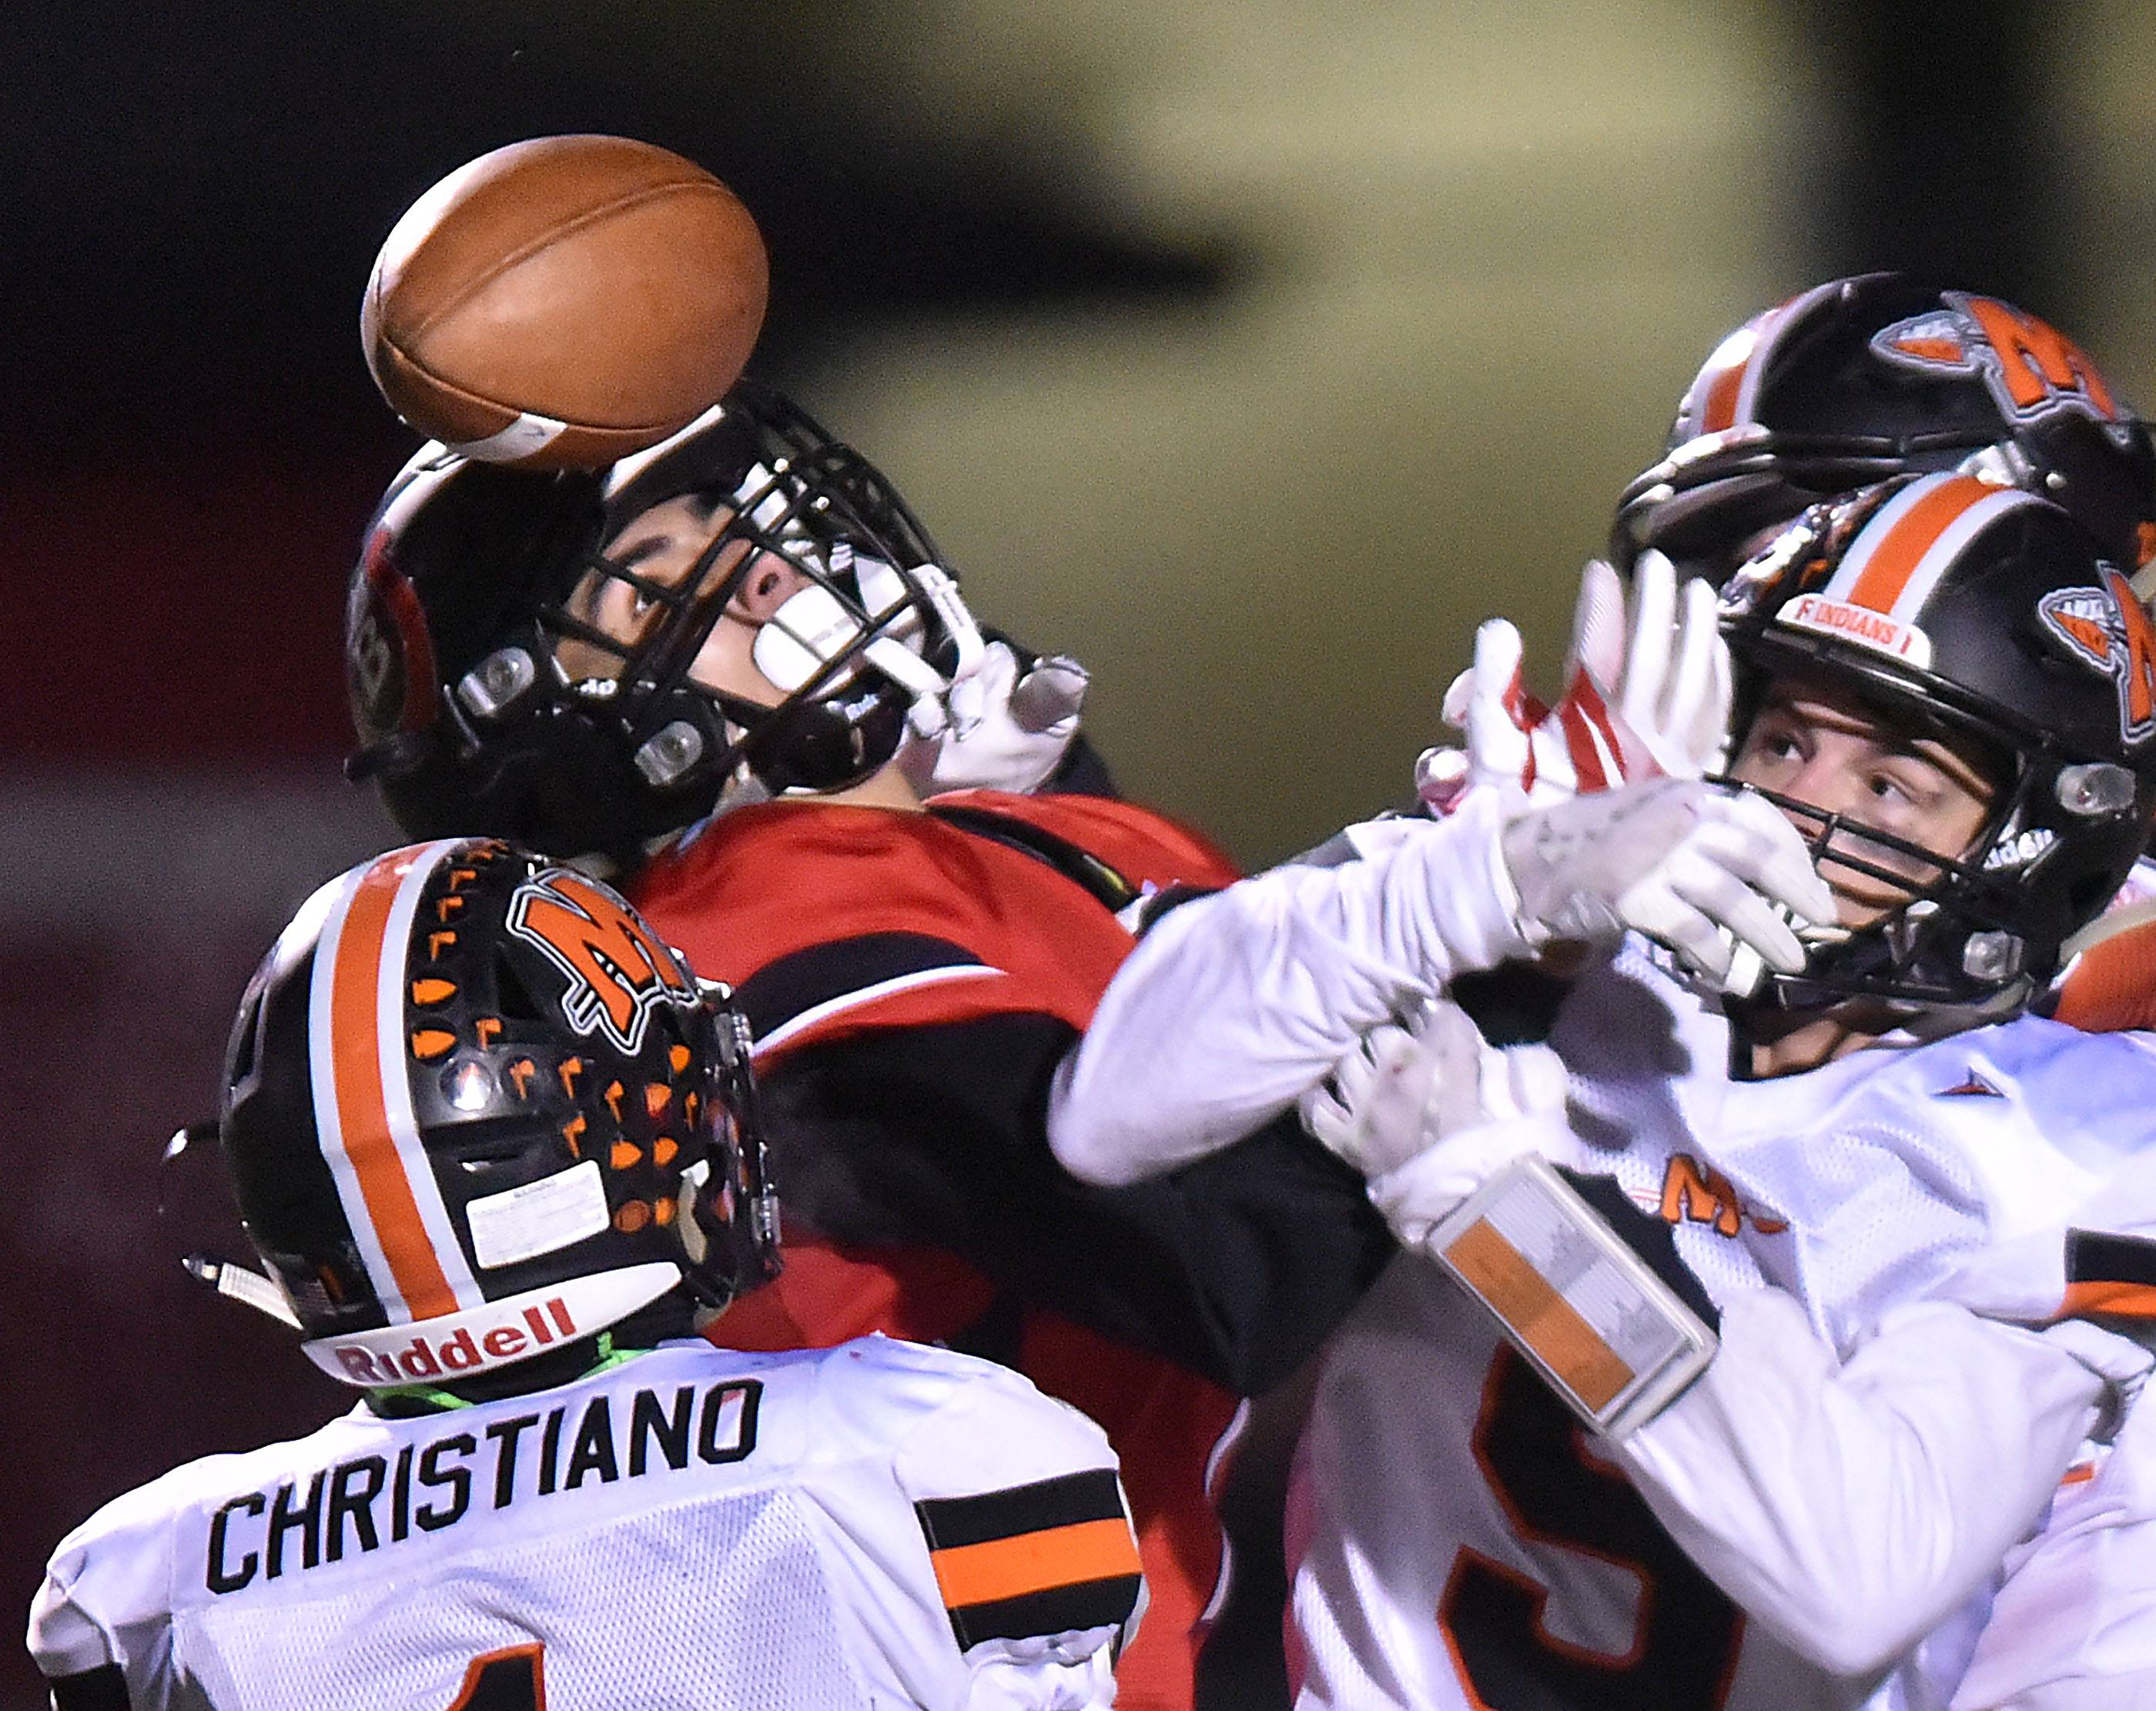 Barrington's Alec Andrea tries to secure a Hail Mary pass to the end zone with no time remaining in regulation and the score tied against visiting Minooka on Friday in the Class 8A football playoffs.